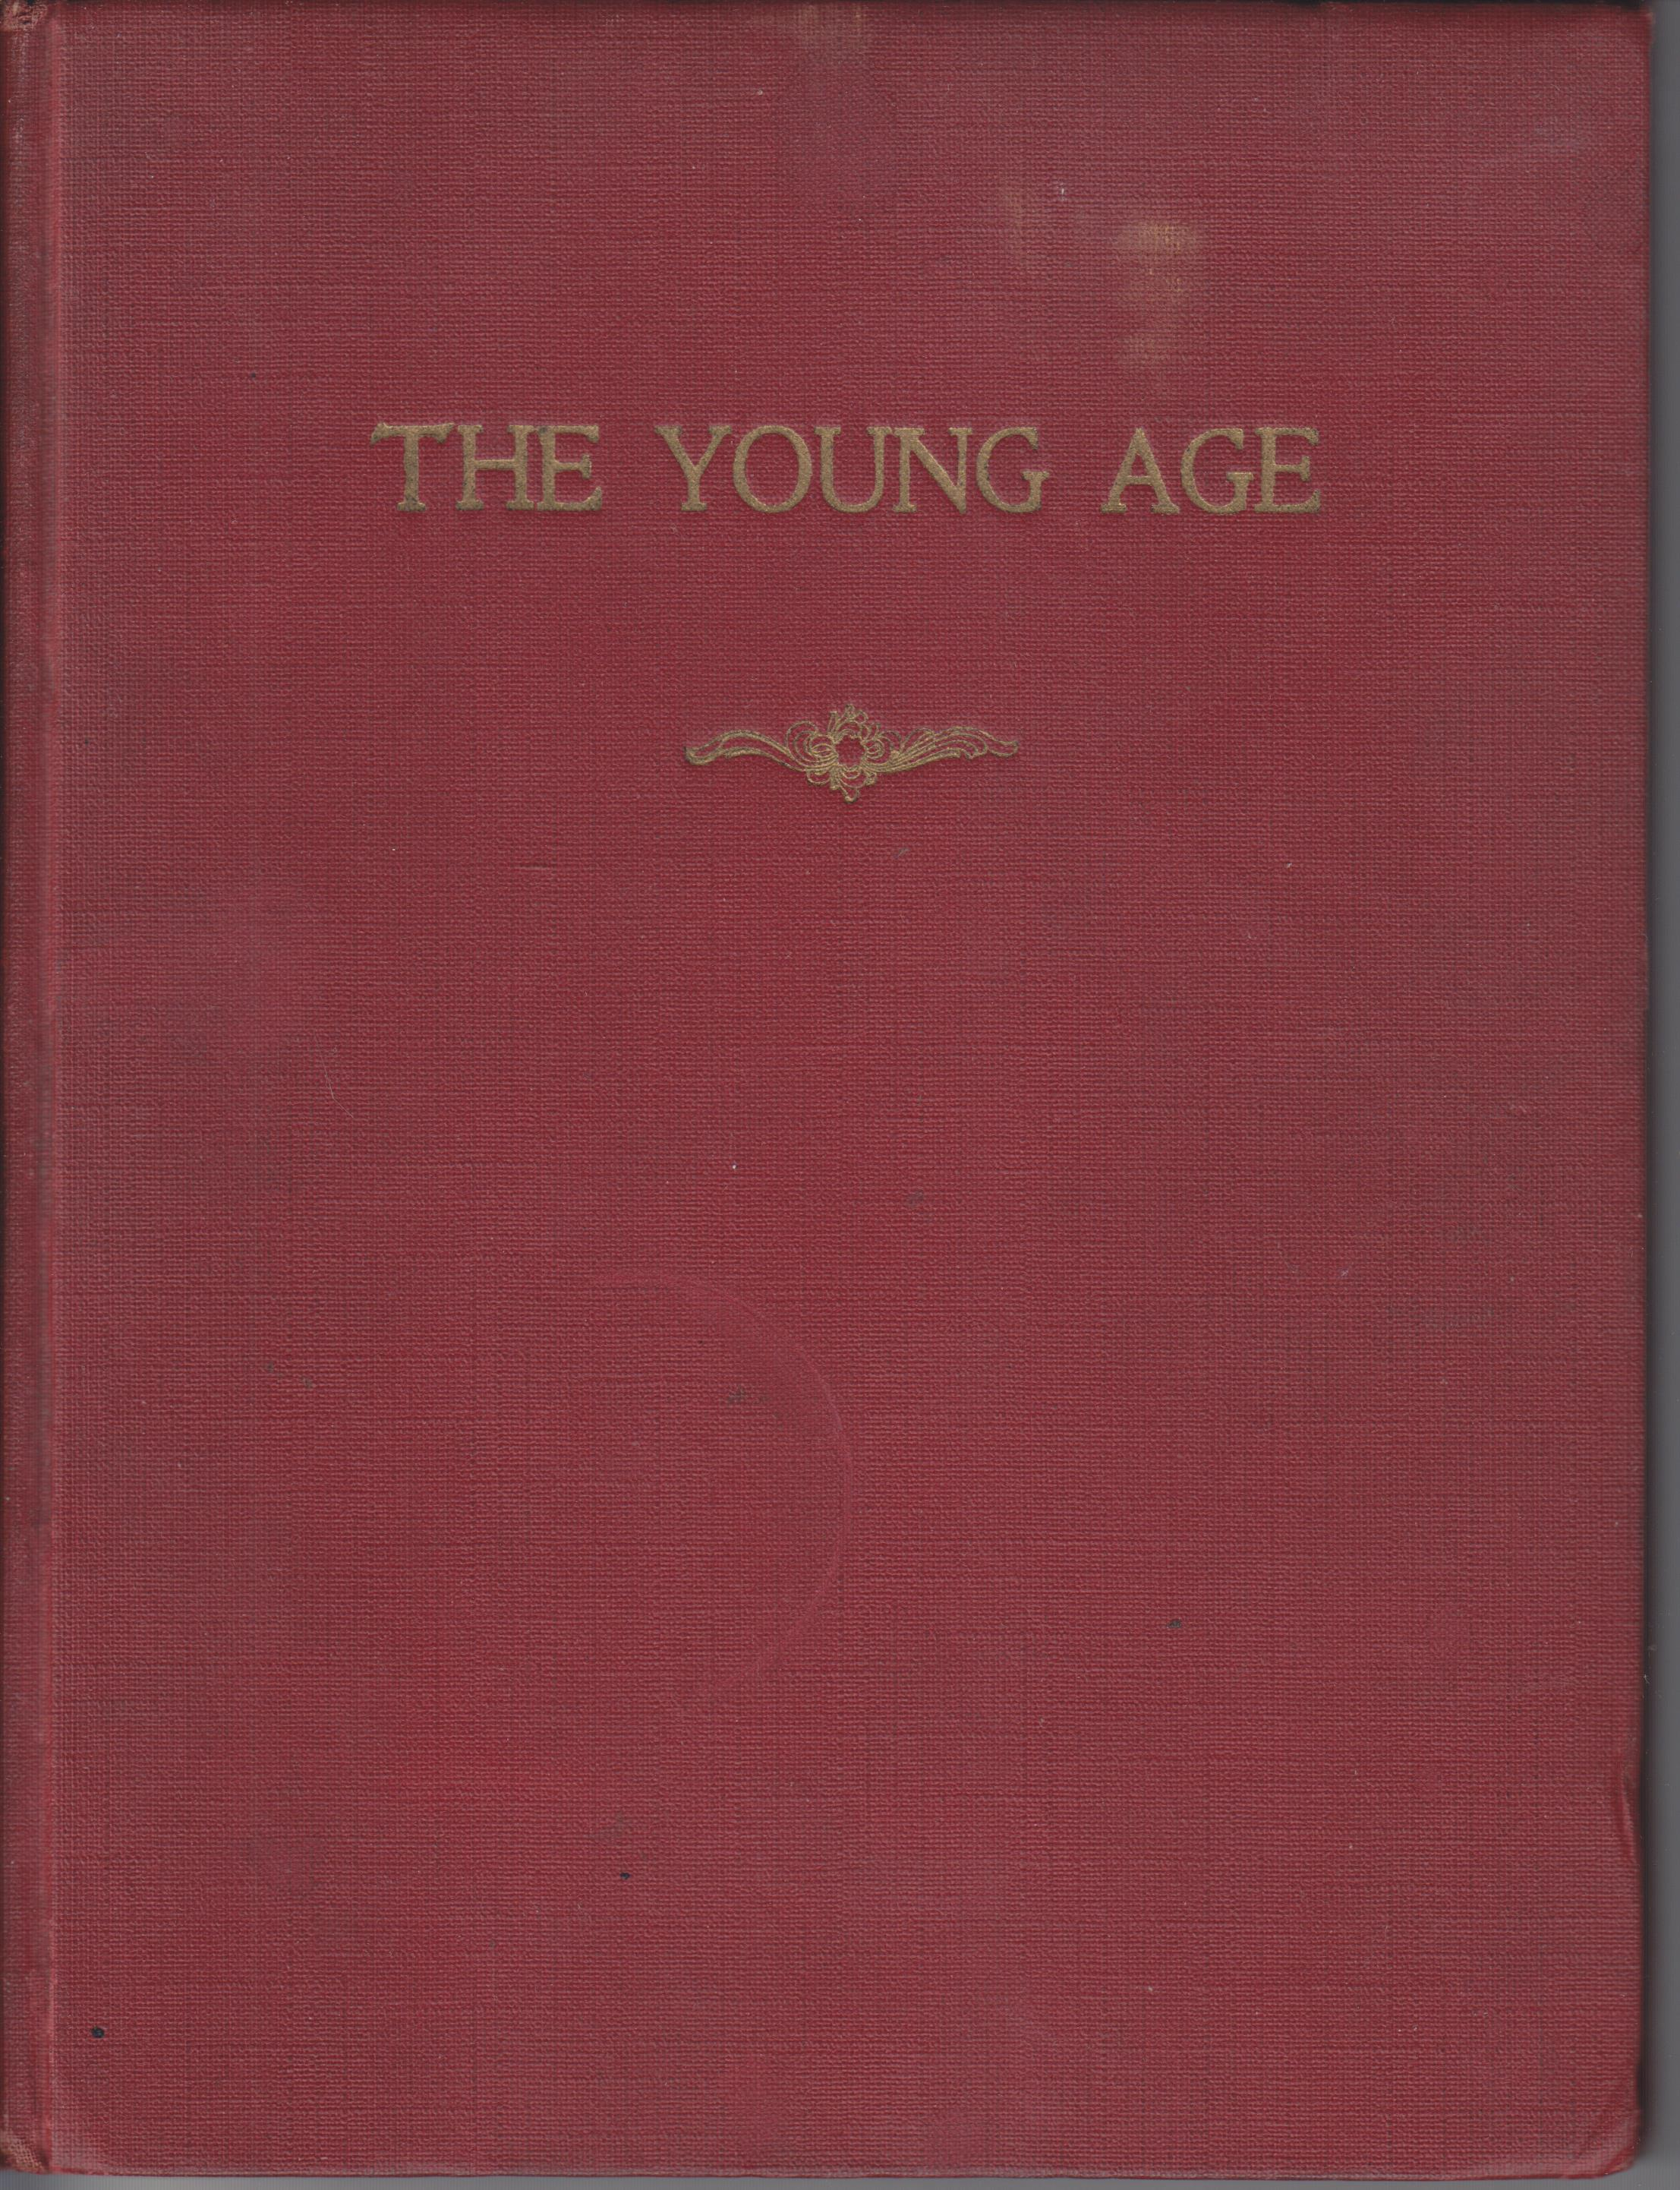 Image for The Young Age. A Quarterly Illustrated Magazine Devoted to Young People Movements. Volume II (April, 1916 - Christmas, 1916 (4 issues)